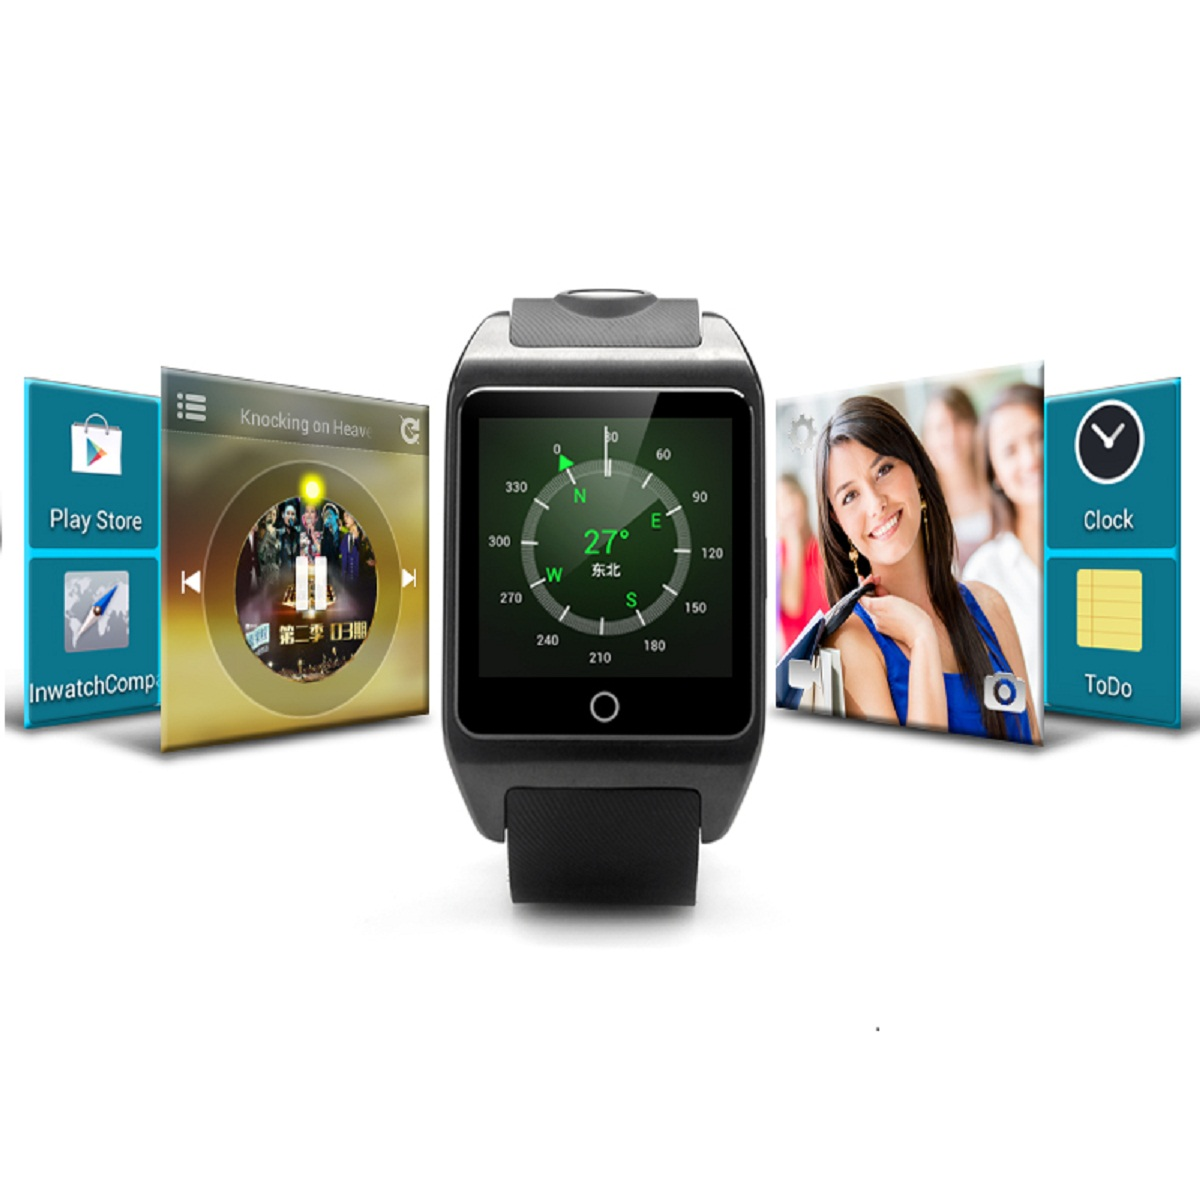 inWatch Z 1.63-inch Android 4.2 IP57 NFC WiFi Dual-core Watch Phone